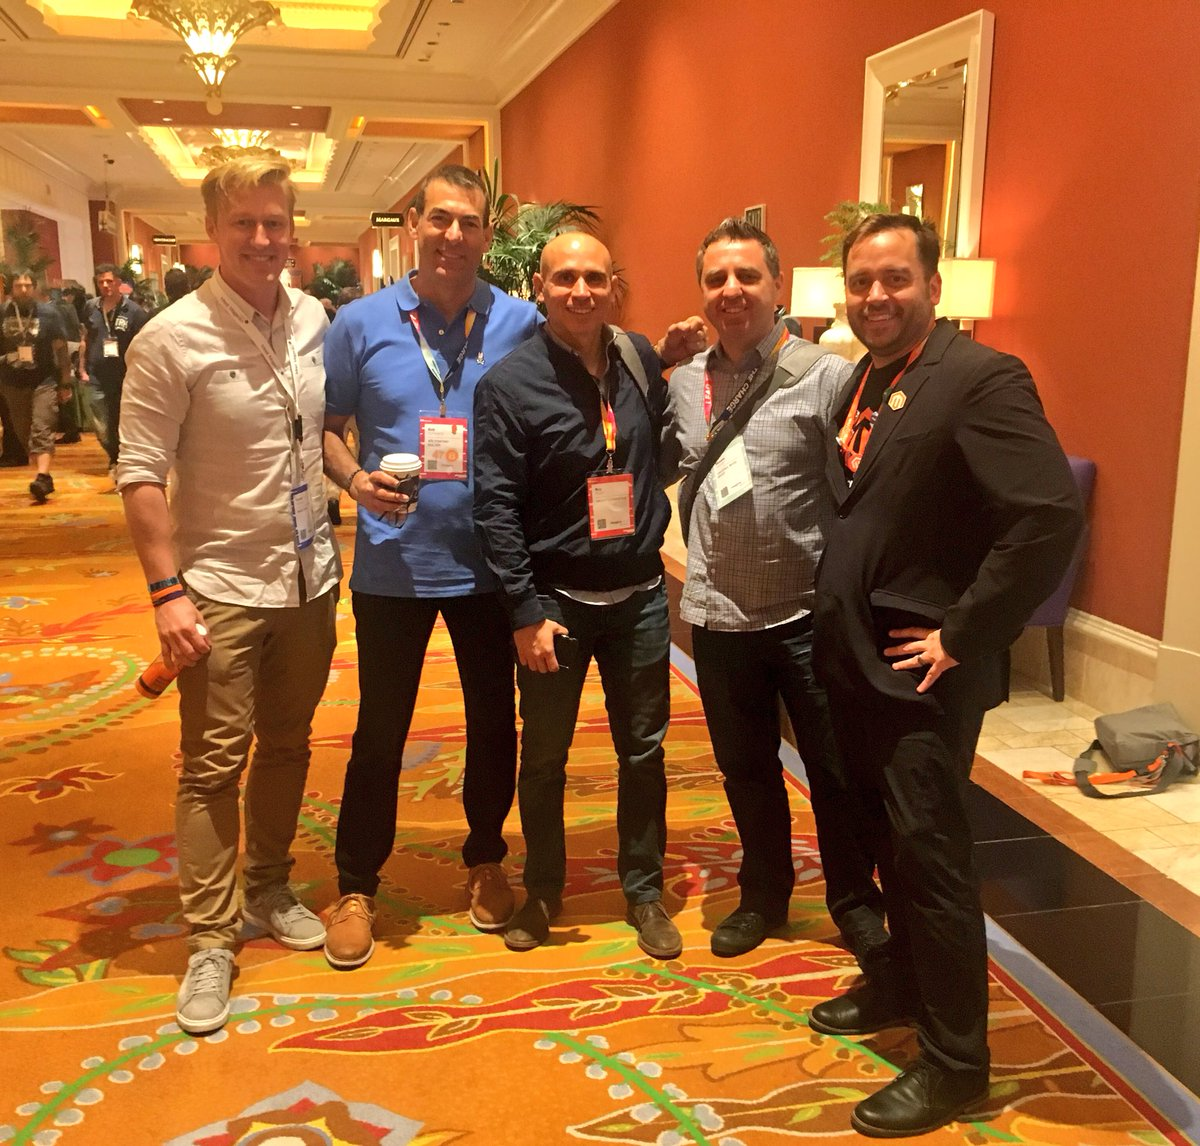 benmarks: Caught up in some awesome history happening this morning at #MagentoImagine - just missing @sherrierohde! https://t.co/i9X3CYqu8S